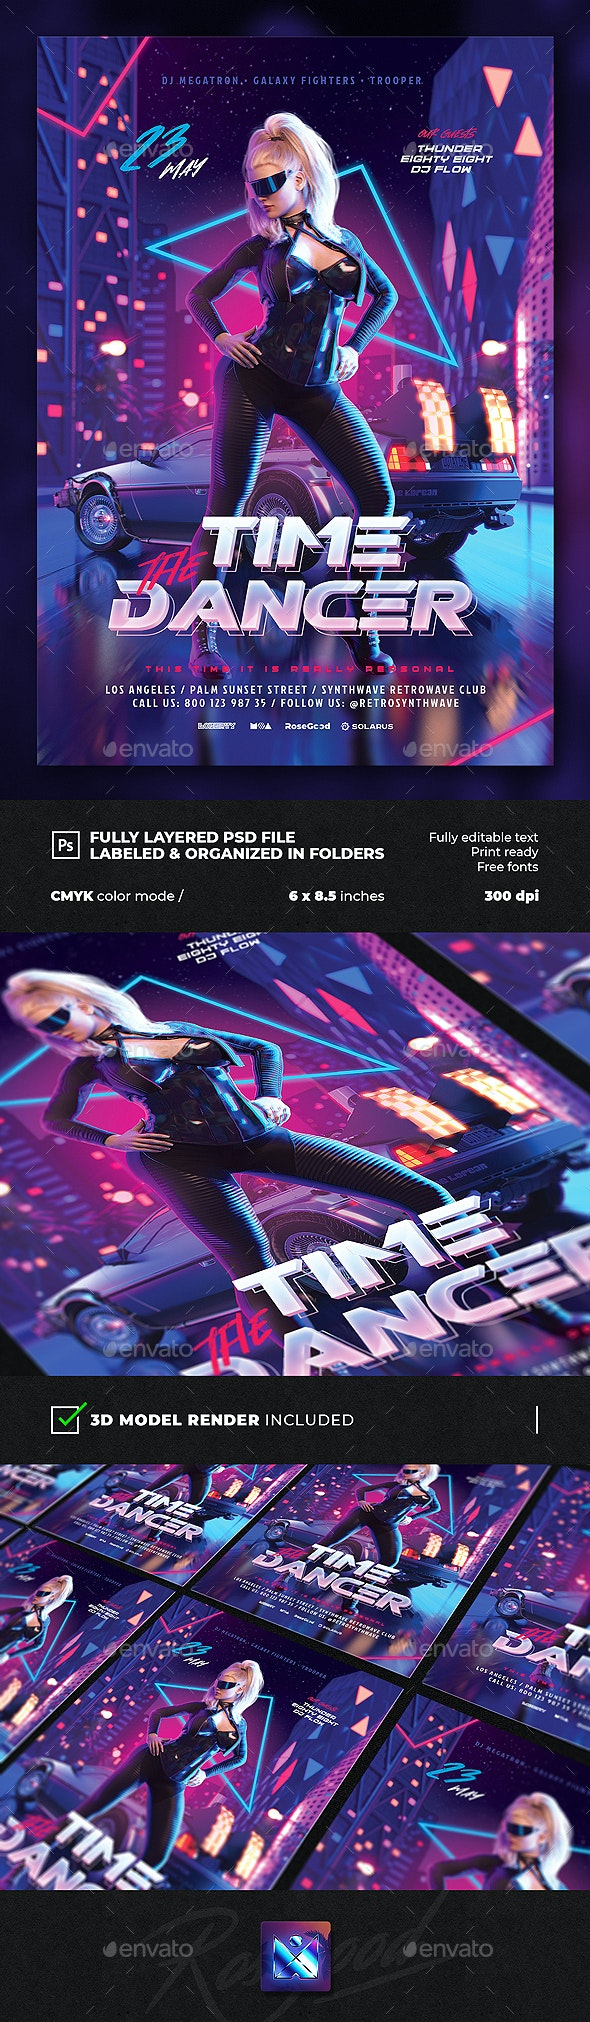 Party Flyer Time Dancer Synthwave Retrowave 80s - Events Flyers